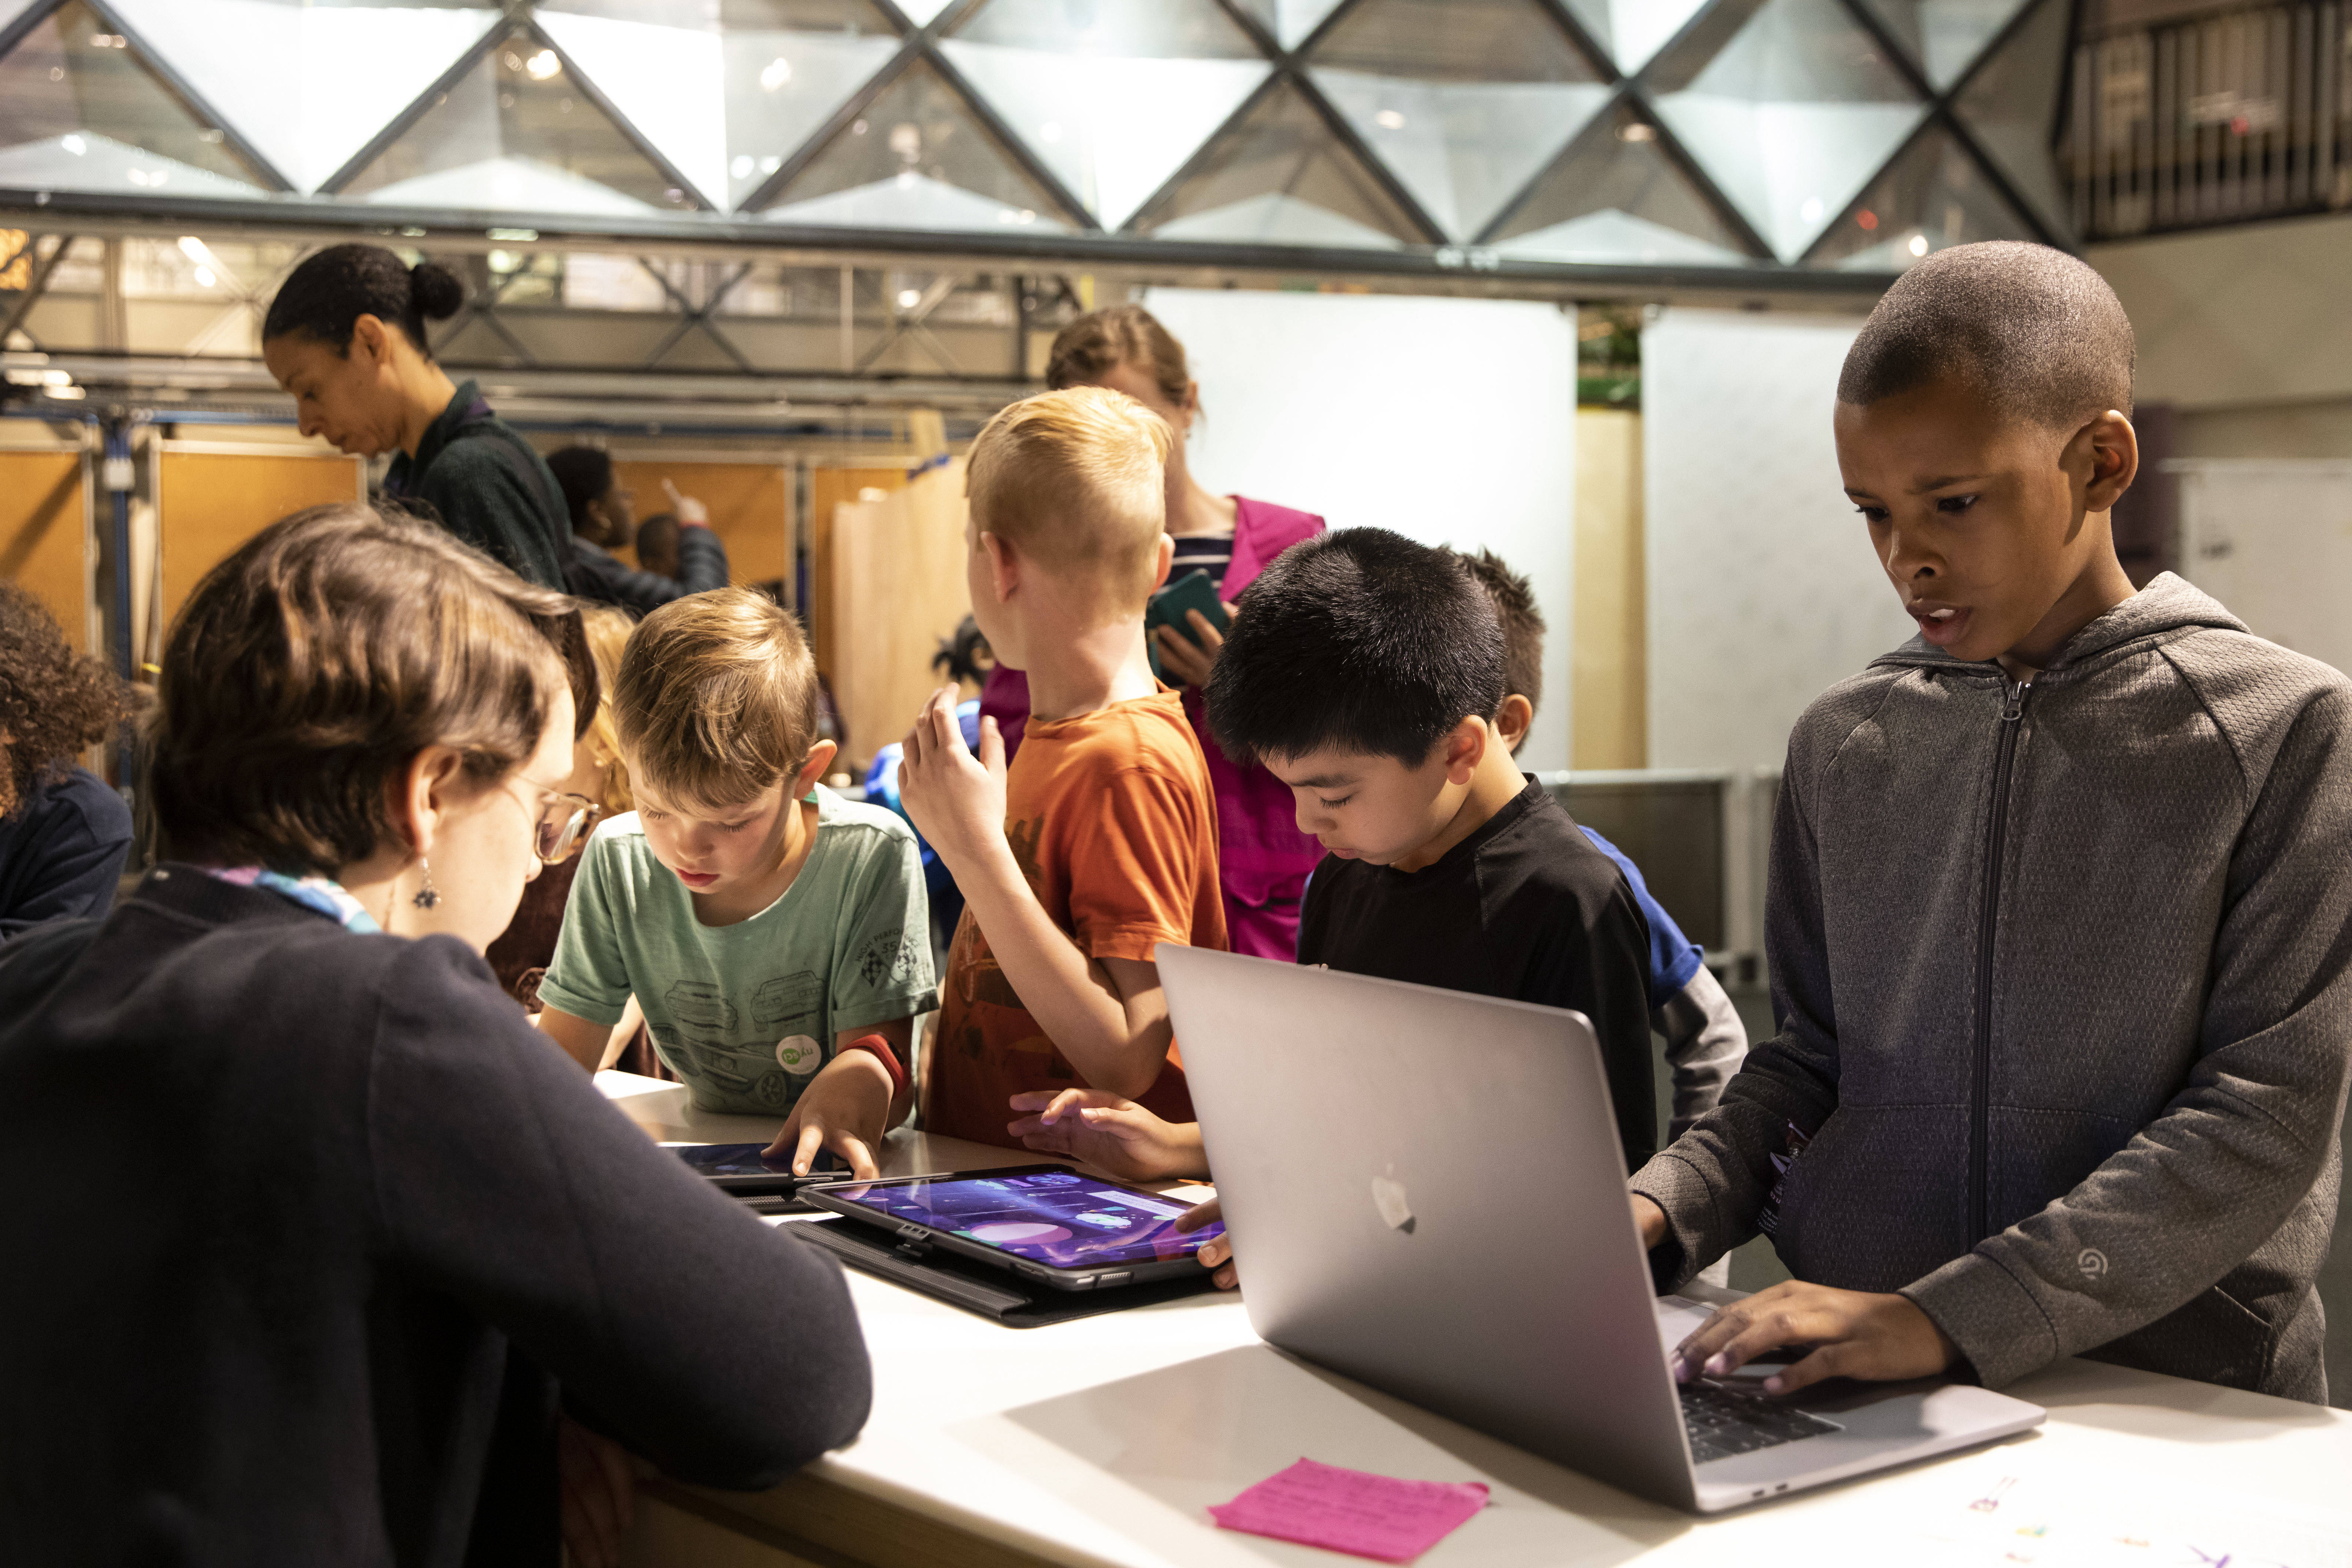 Children on computers in a museum or maker space